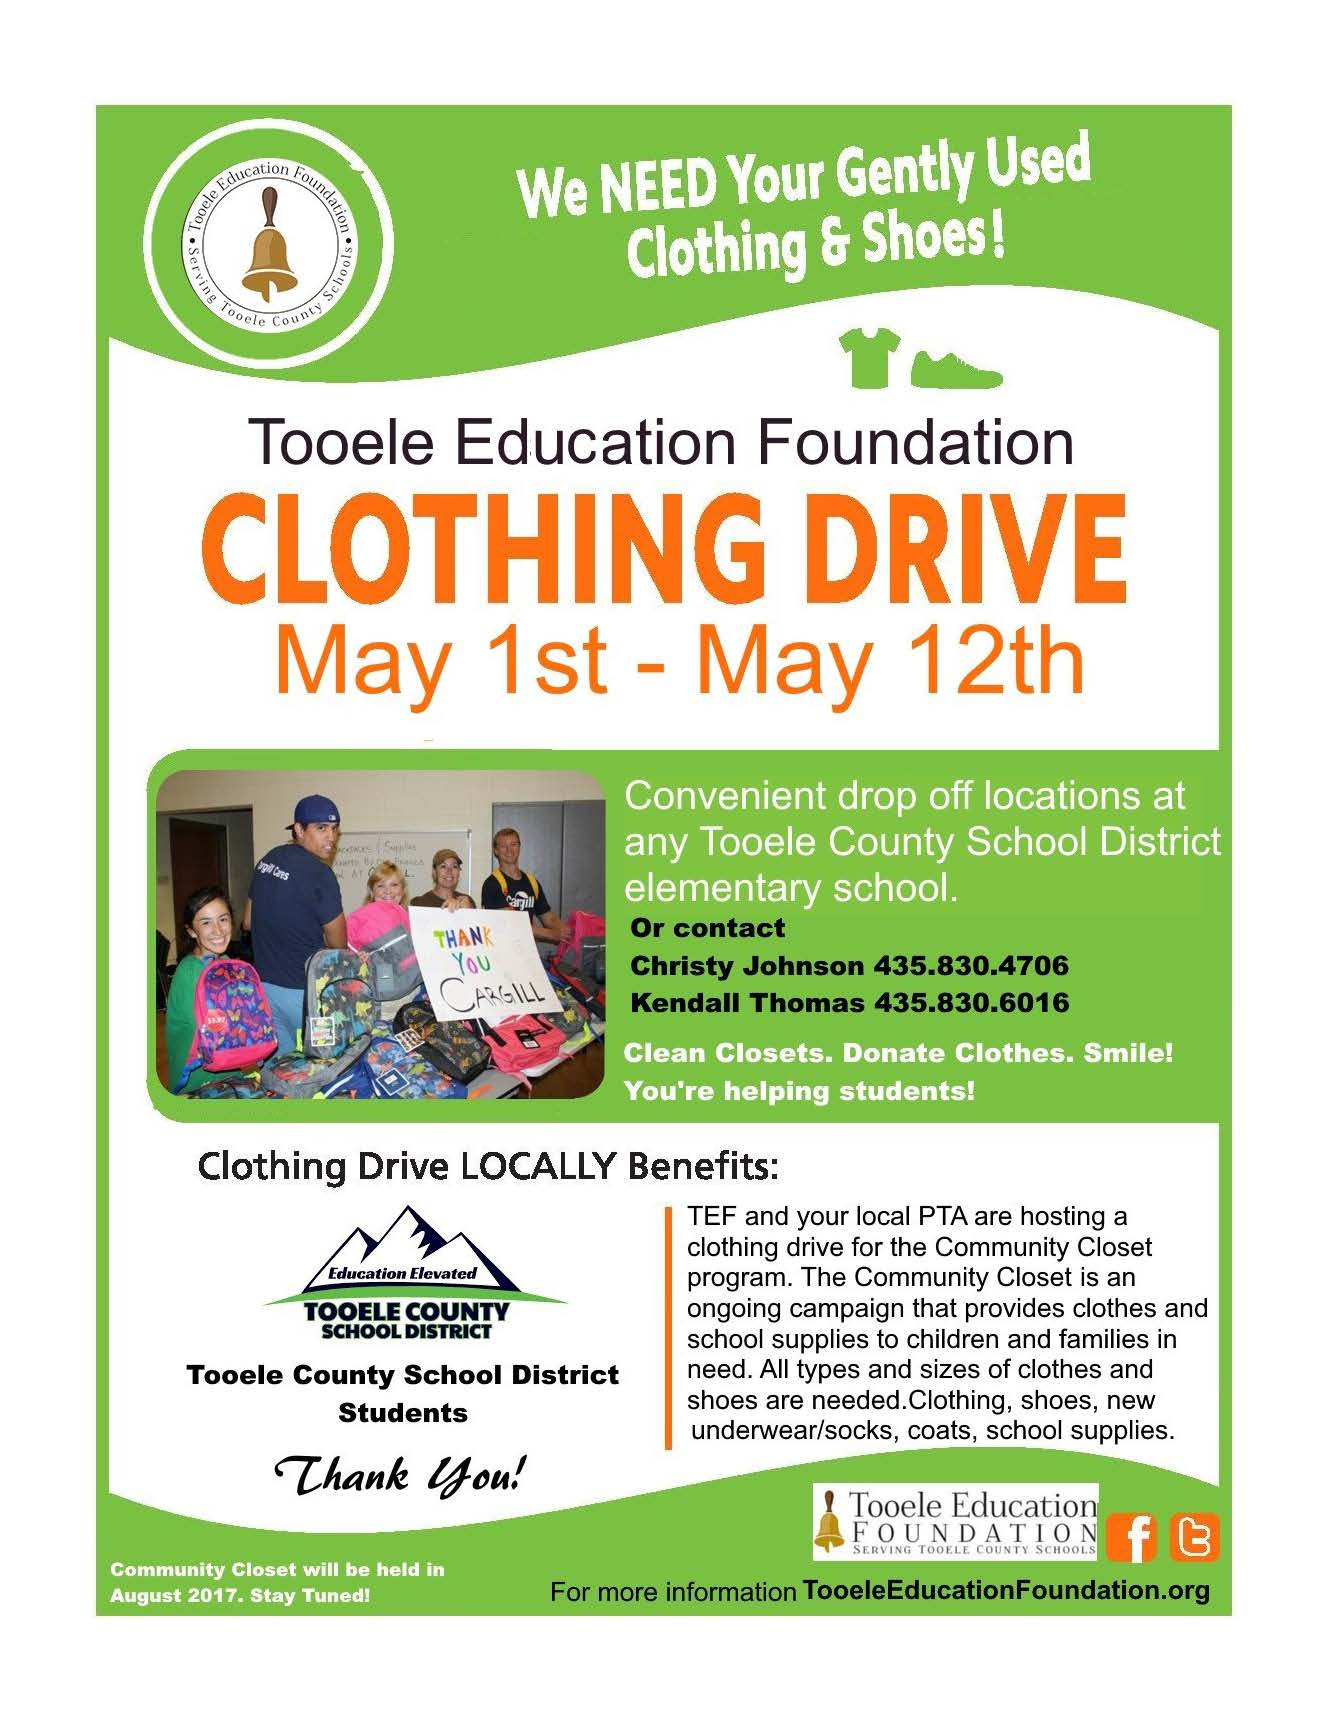 Tooele Education Foundation Clothing Drive